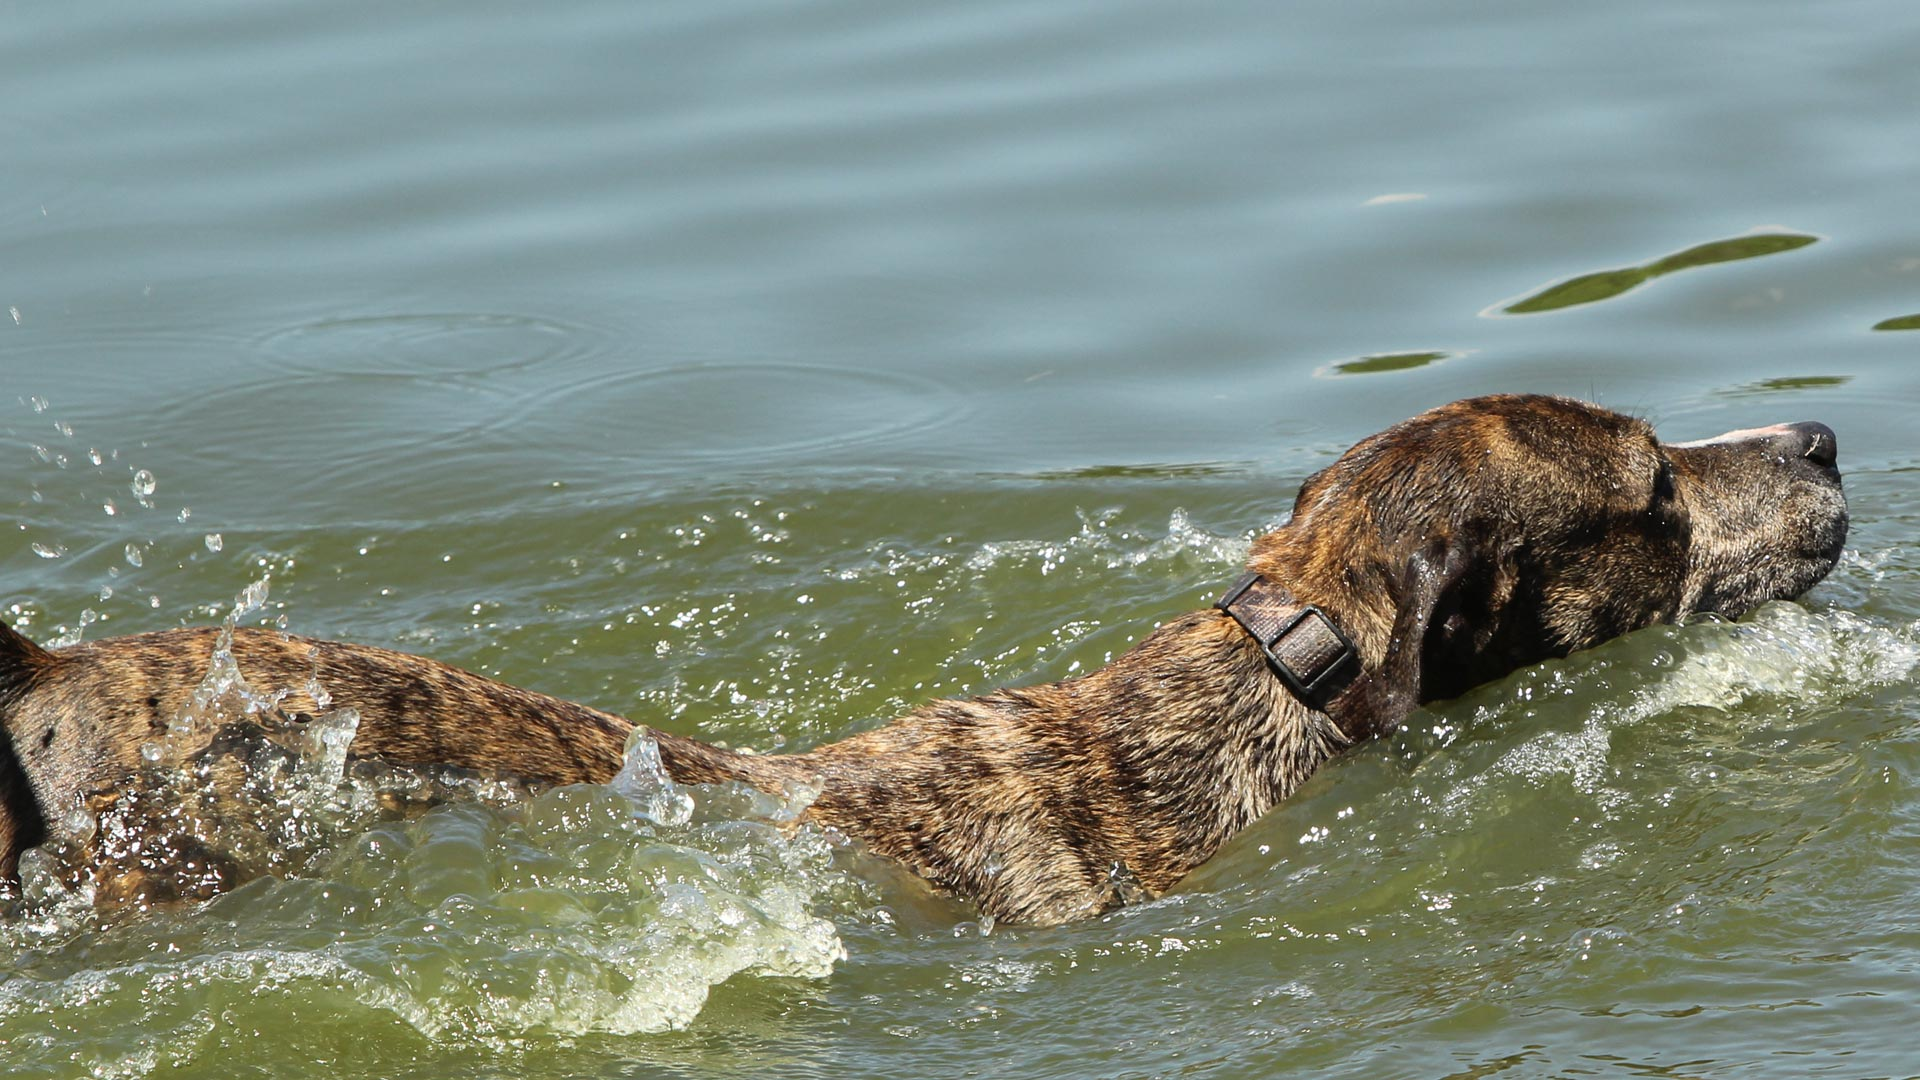 One of our rescue dogs enjoying a swim at a local river in Bradenton.